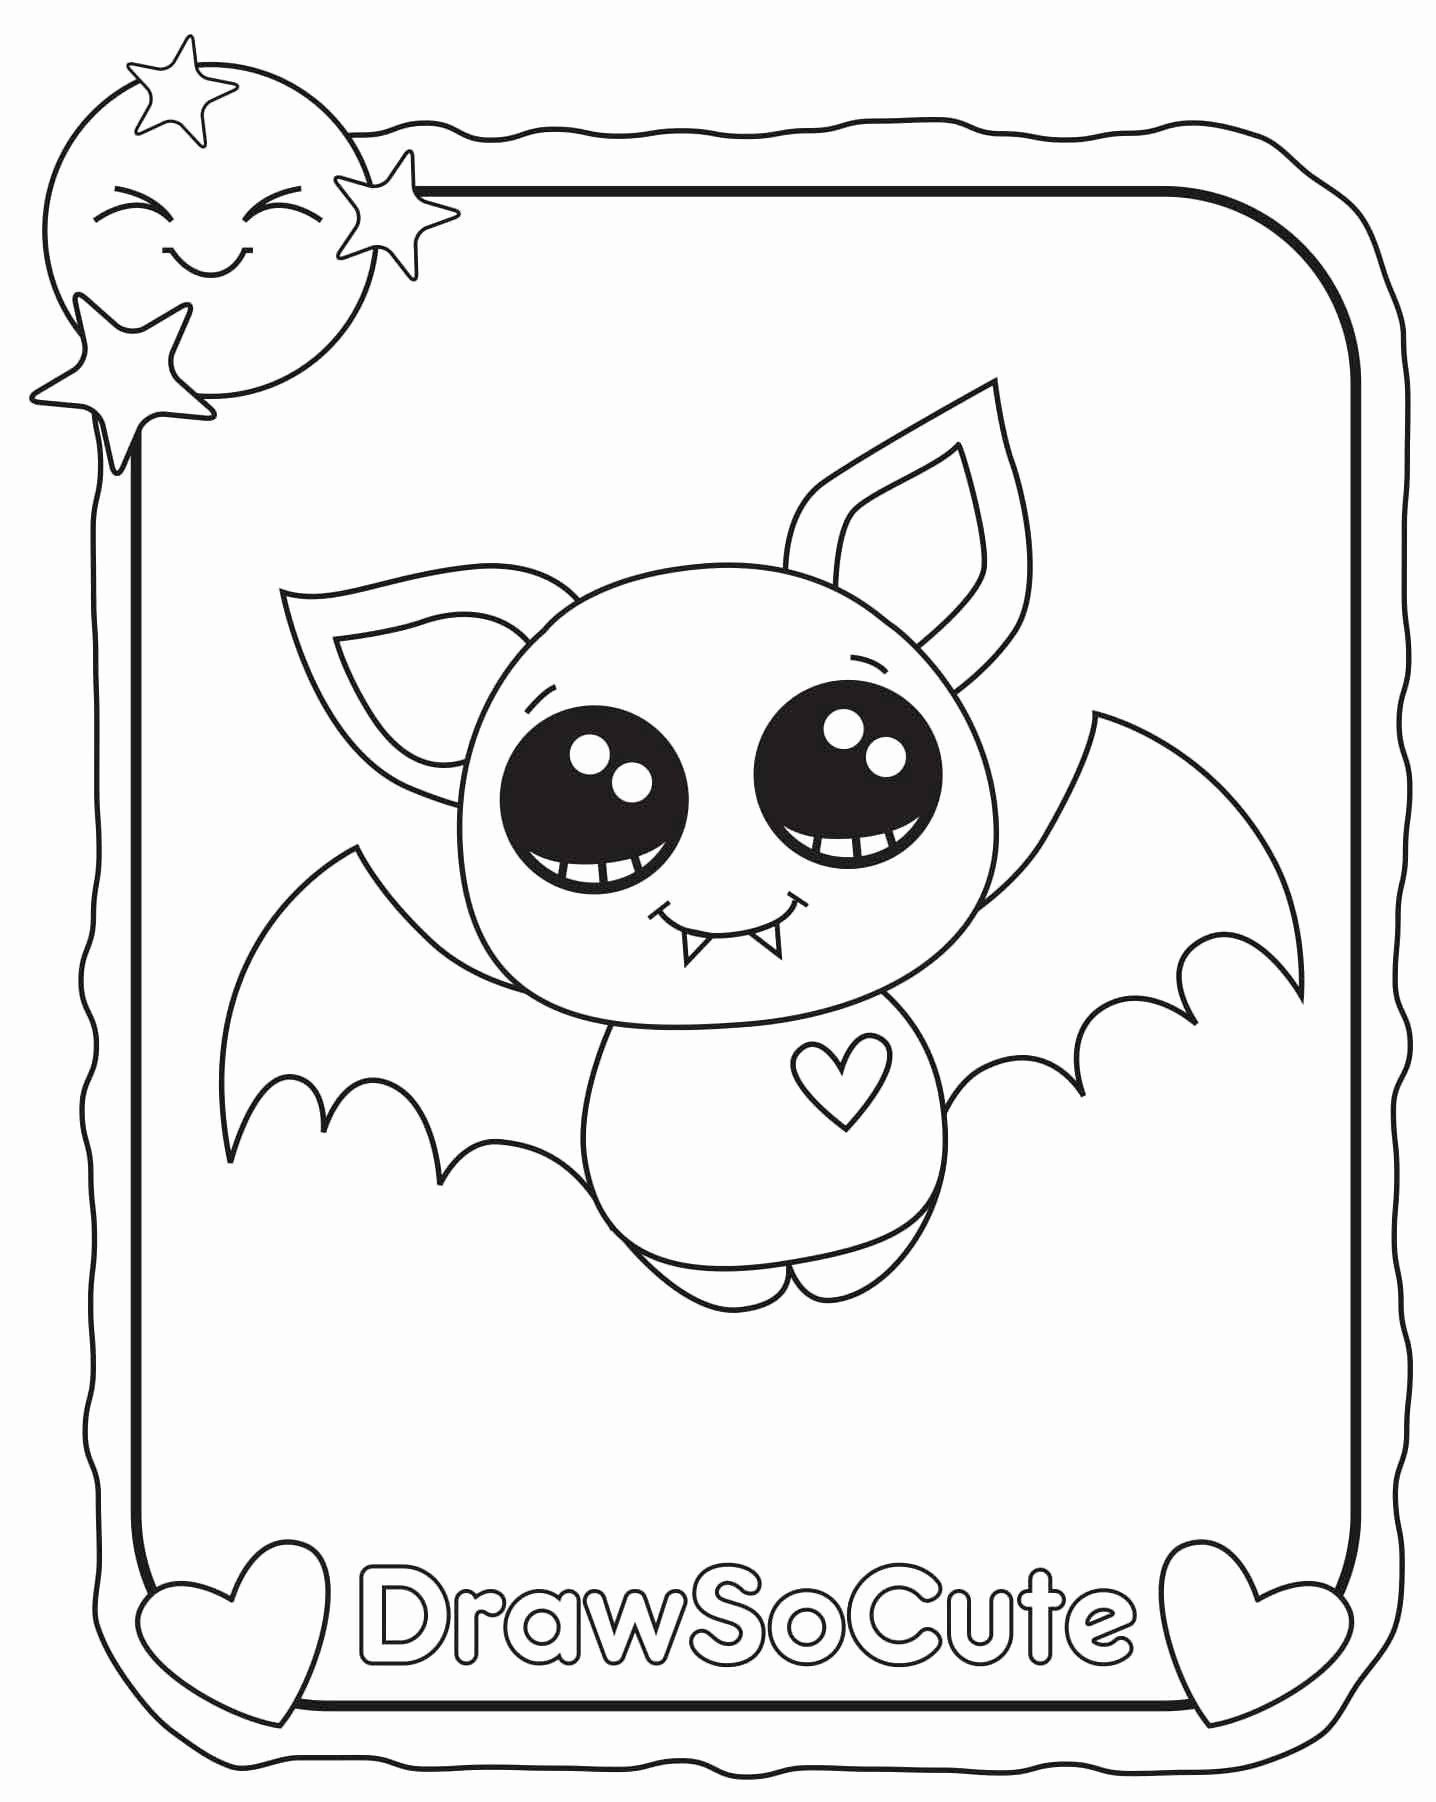 Halloween Coloring Pages Halloween Coloring Cute Halloween Coloring Pages Halloween Coloring Pages